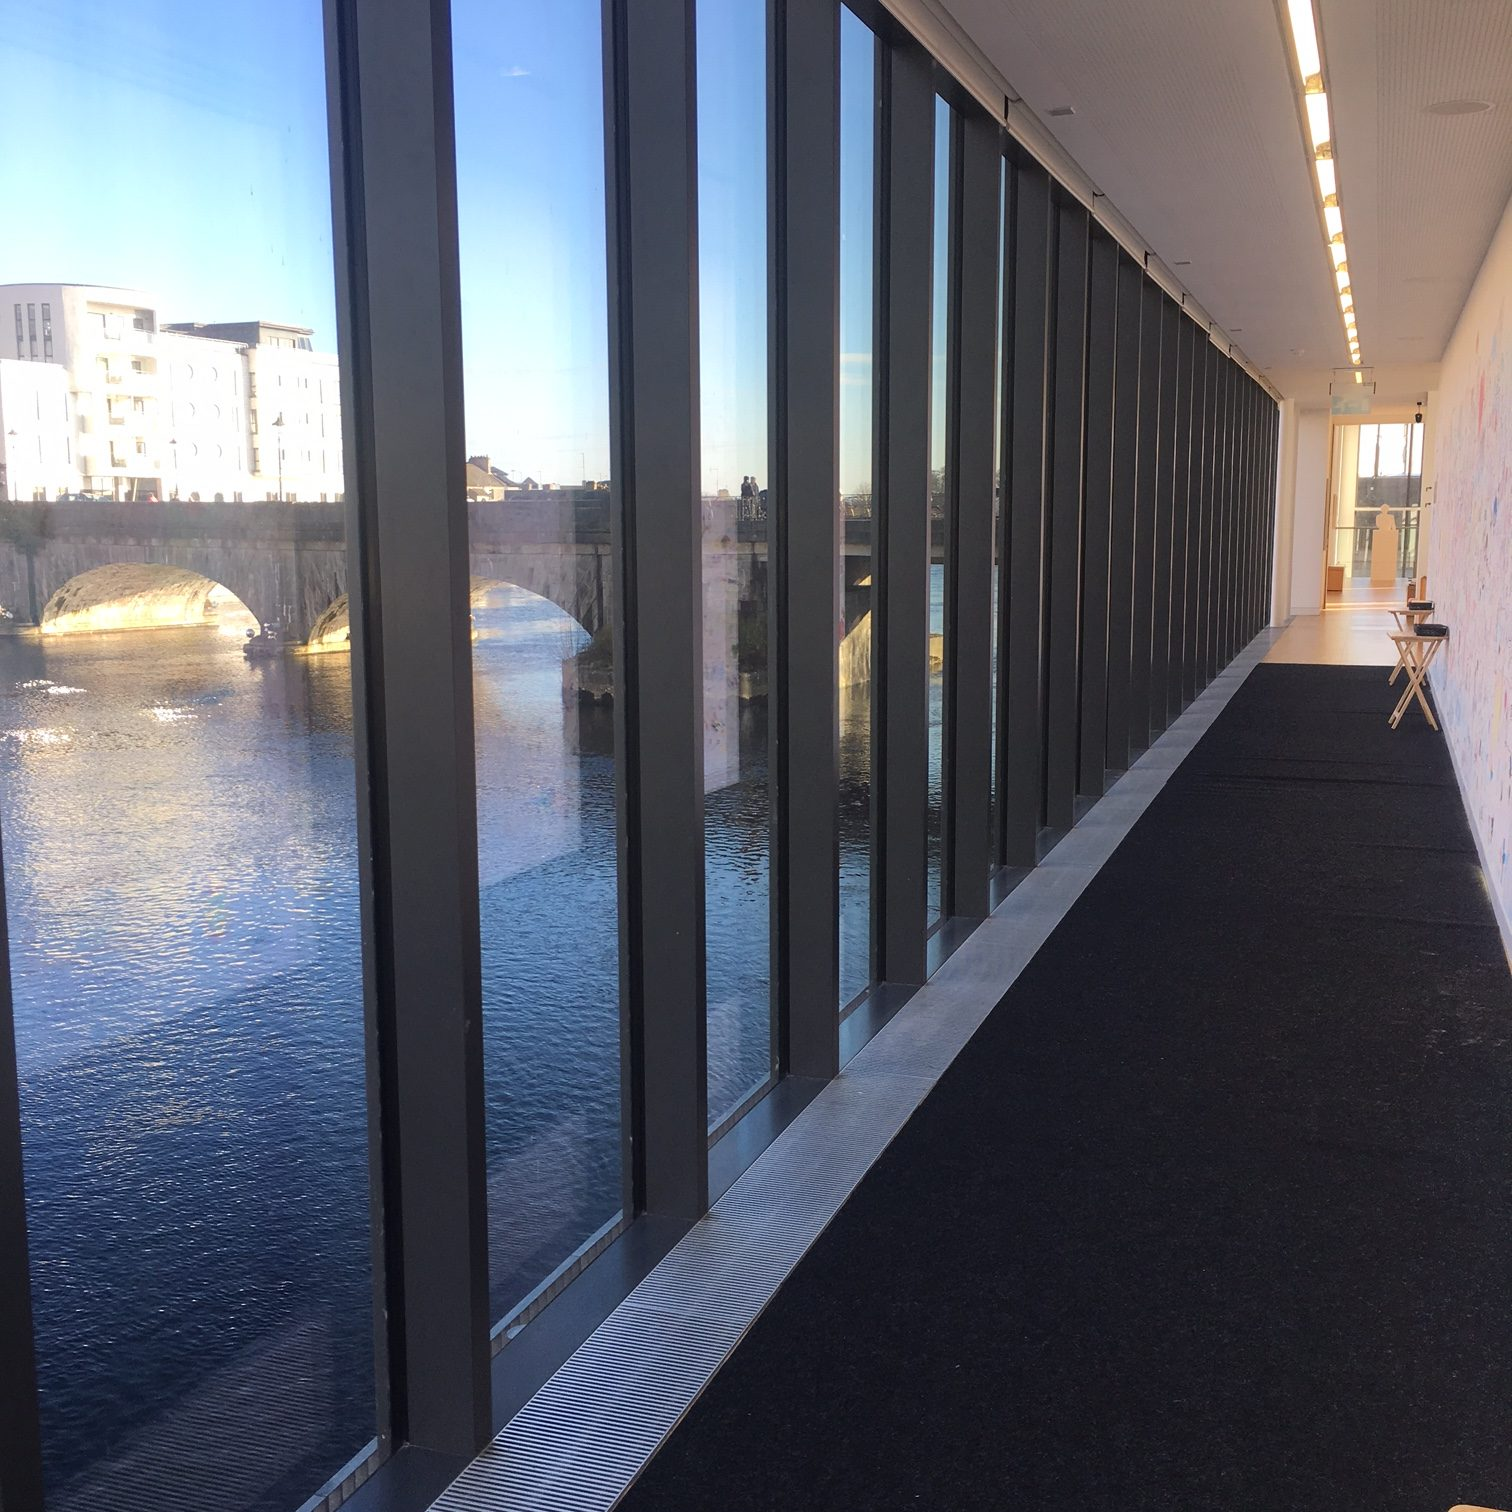 inside Luan Gallery on the banks of the Shannon River, Athlone in Ireland